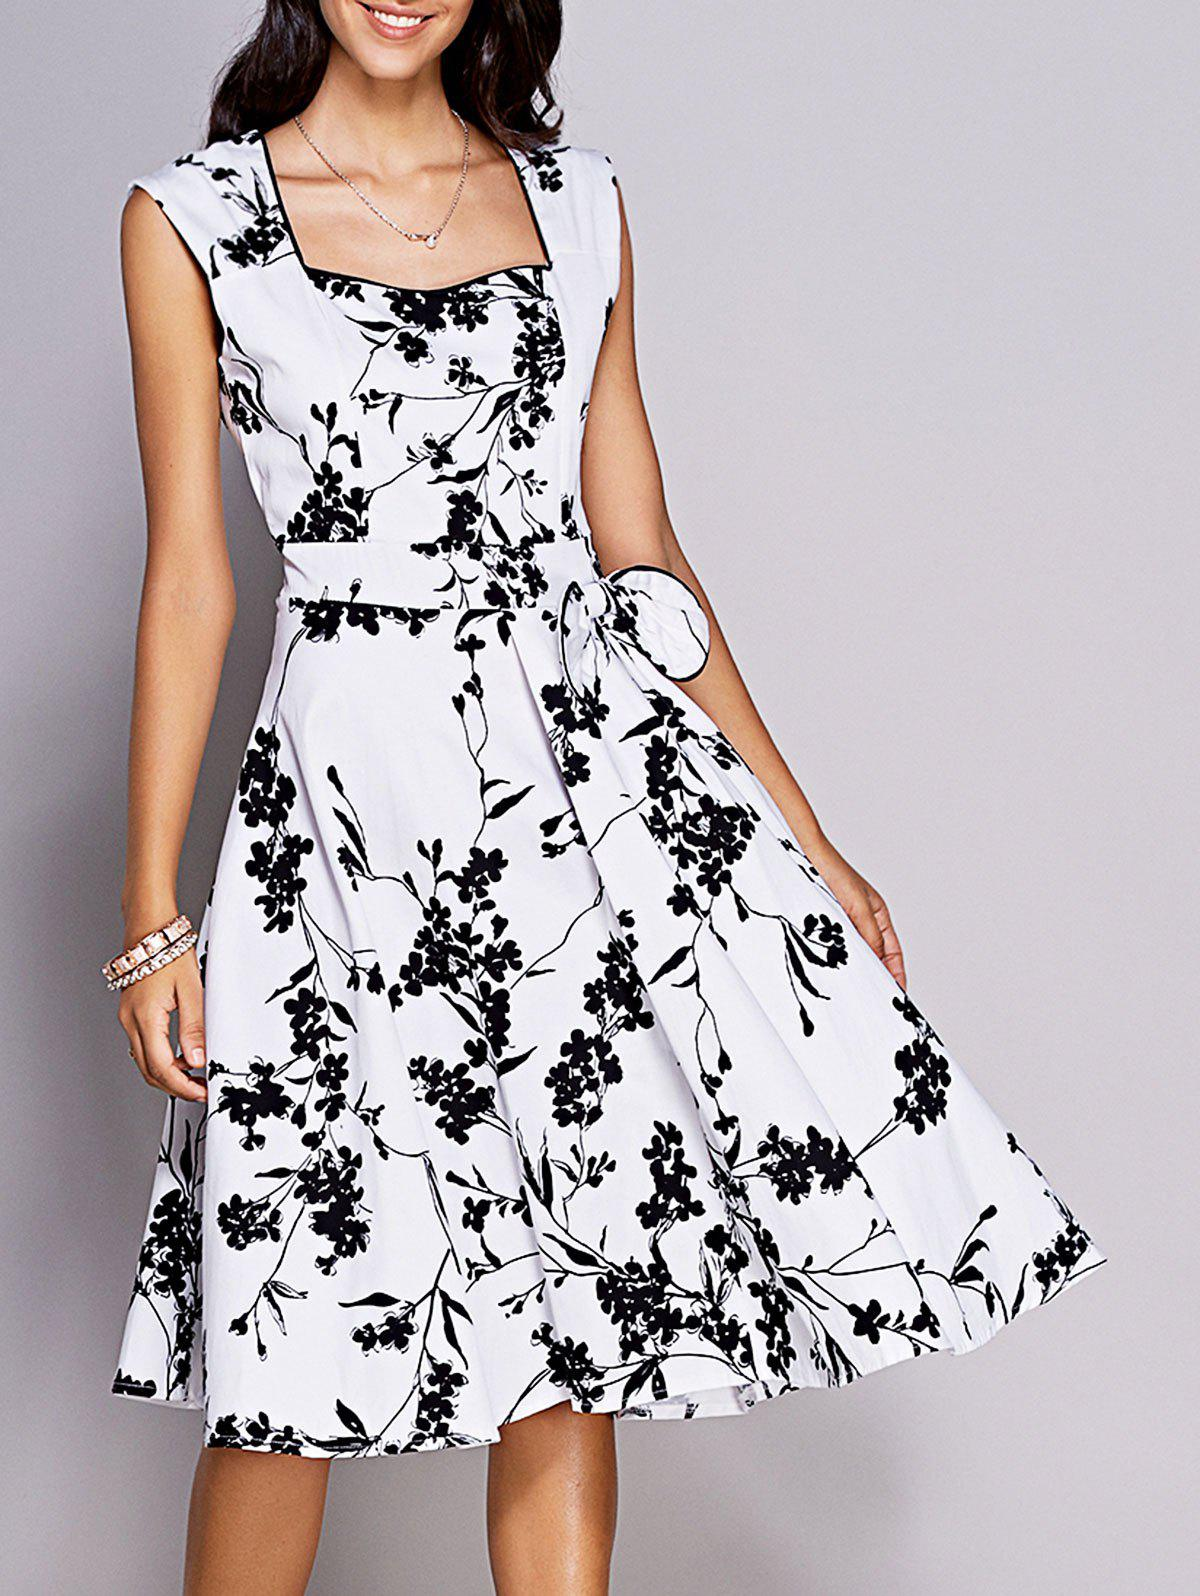 Retro Women's Floral Sweetheart Neck Bowknot Embellished Dress - WHITE/BLACK 2XL